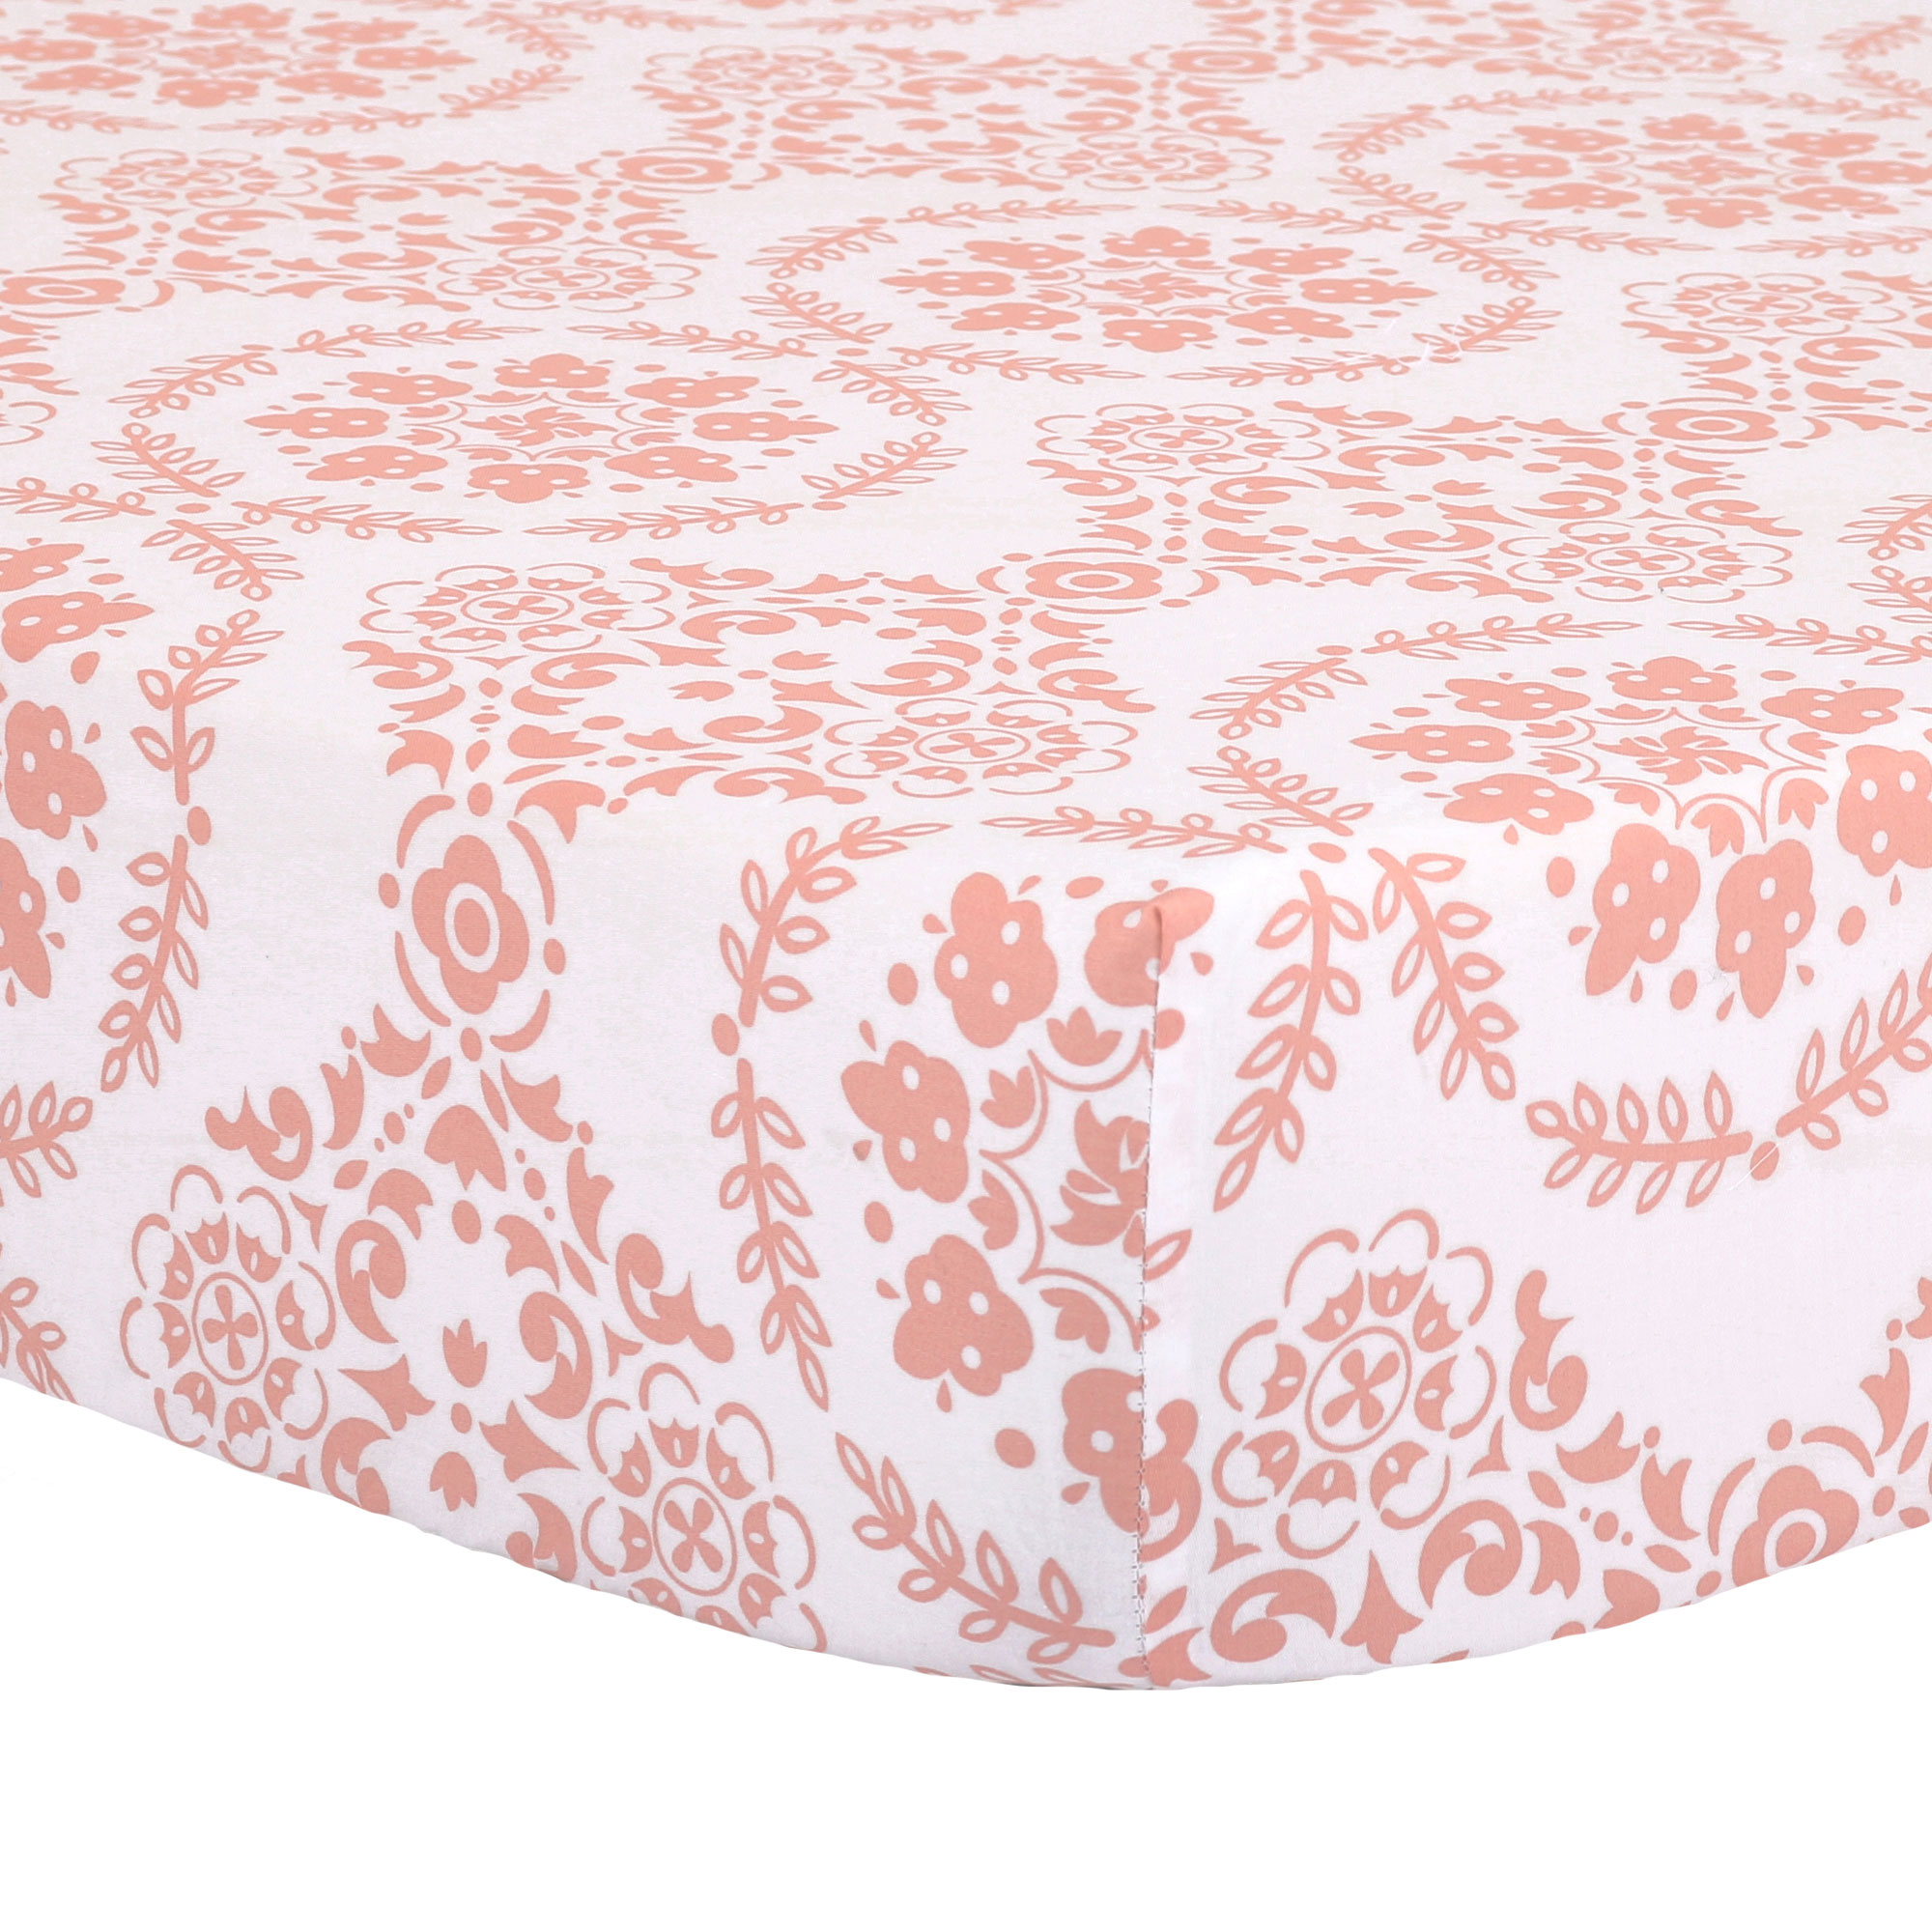 The Peanut Shell Baby Crib Fitted Sheet - Coral Pink Floral Medallion Print - 100% Cotton Sateen, Fits Standard 52 by 28 Inch Mattress